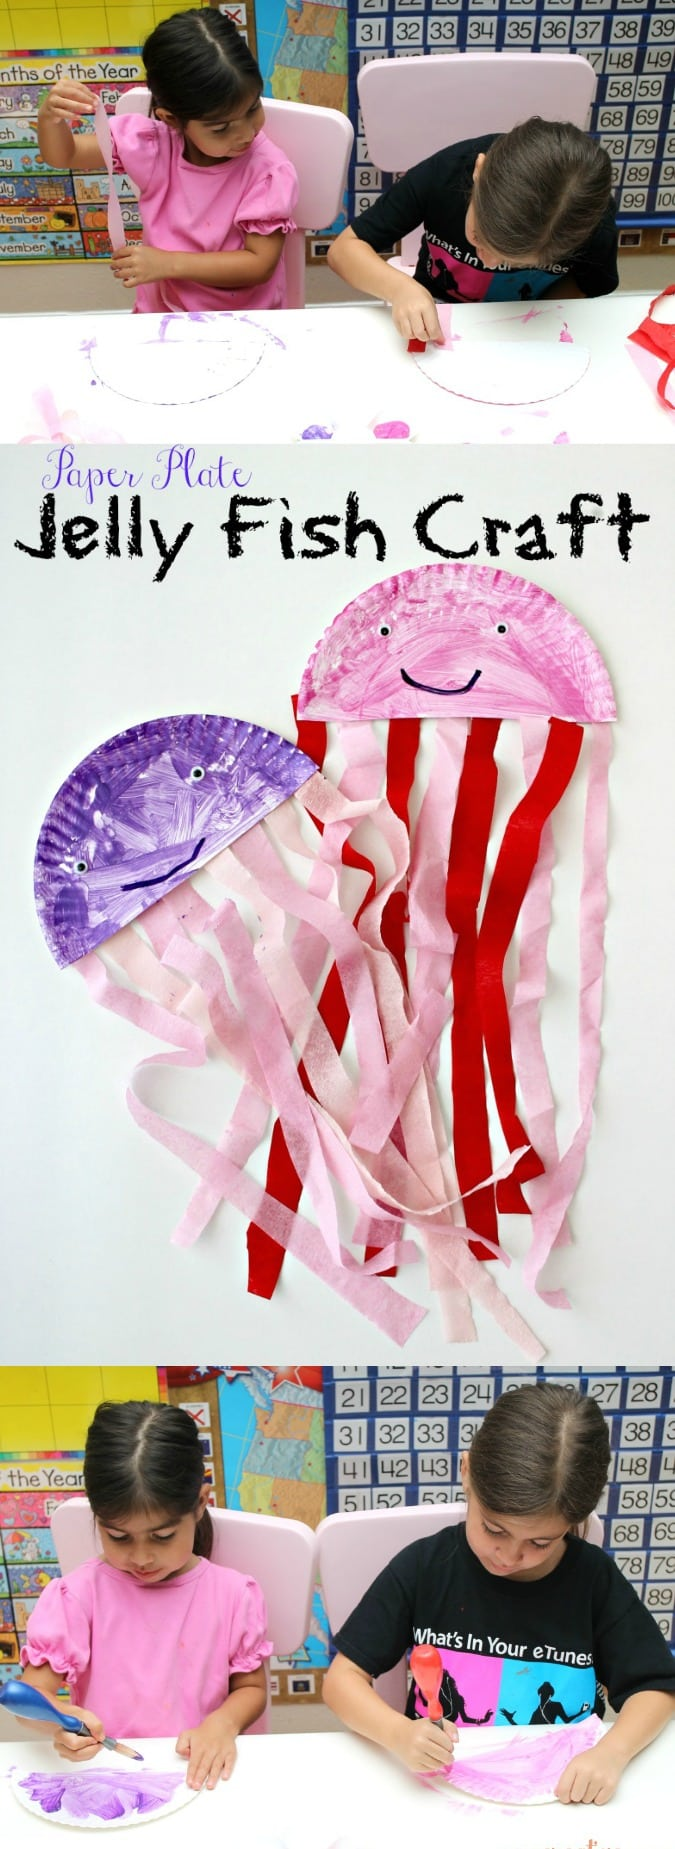 Paper Plate Jelly Fish Craft For Kids